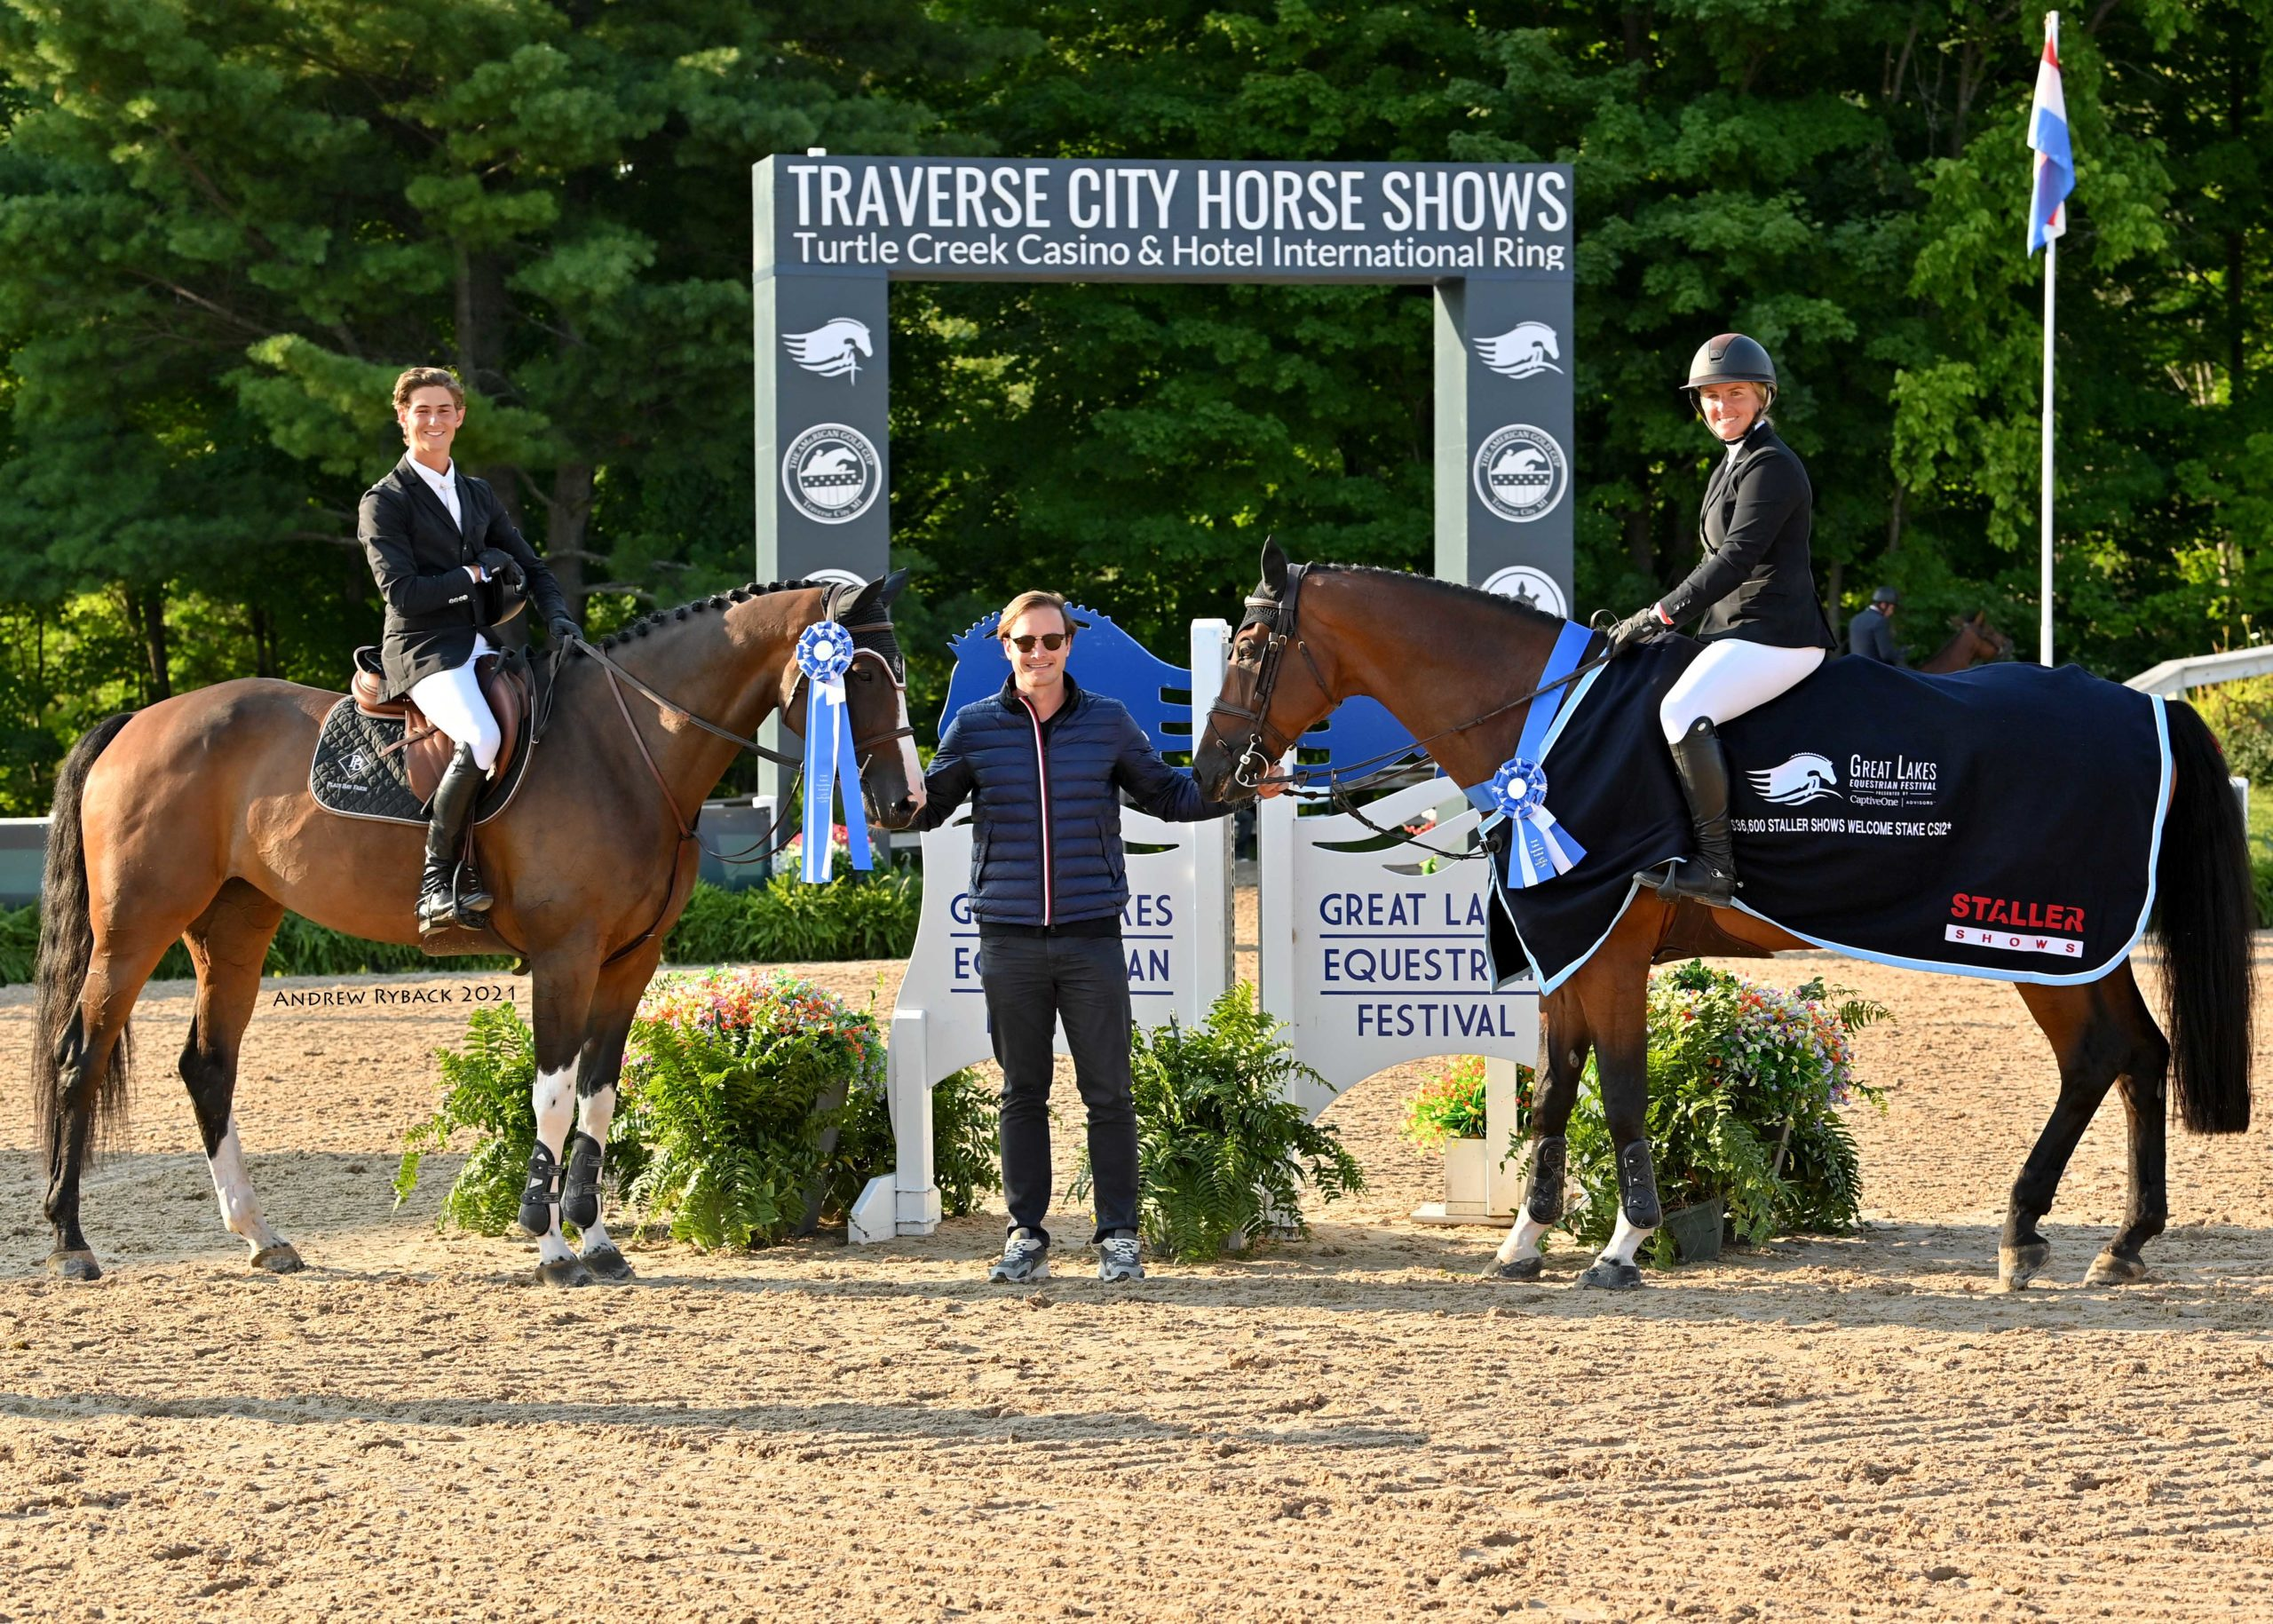 Samantha Schaefer and Dominic Gibbs tie for top honors  $36,600 Staller Shows Welcome Stake CSI2*